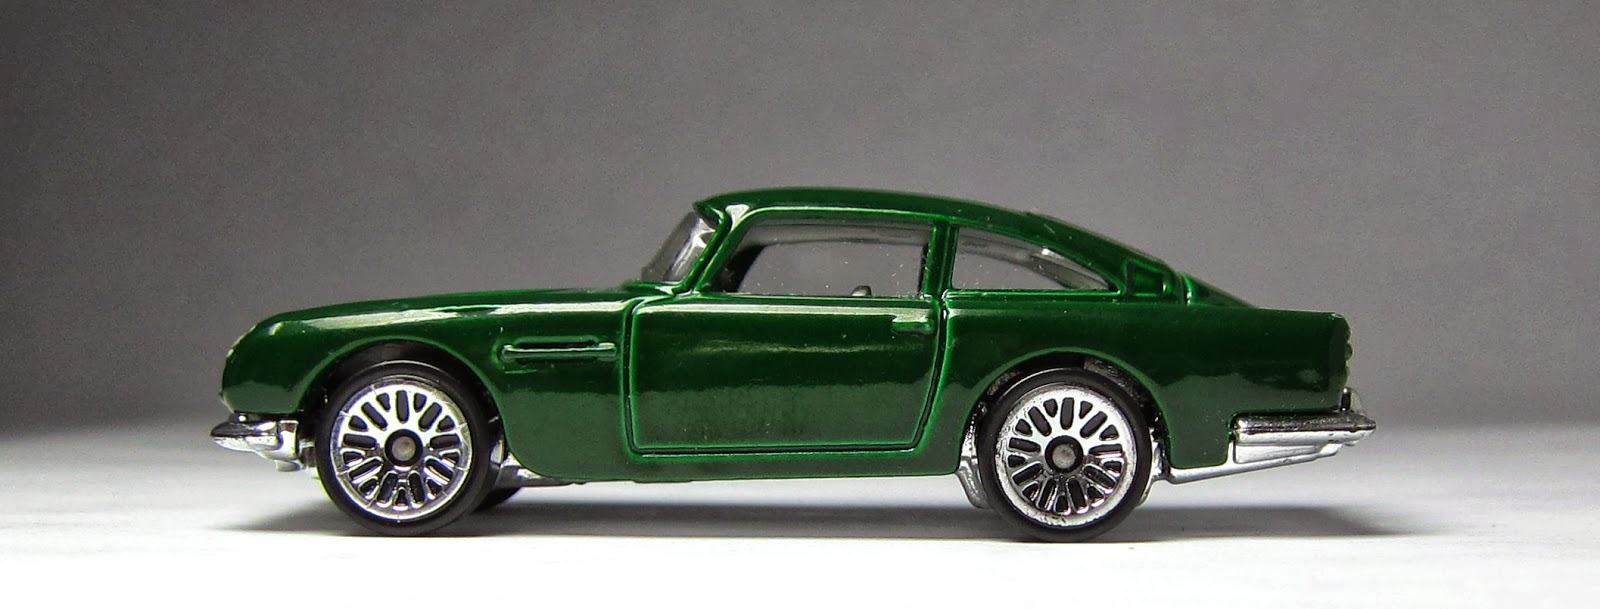 www.realypic.com  imagesize:956x1440h Hot Wheels 1963 Aston Martin DB5 (2014 New Models):